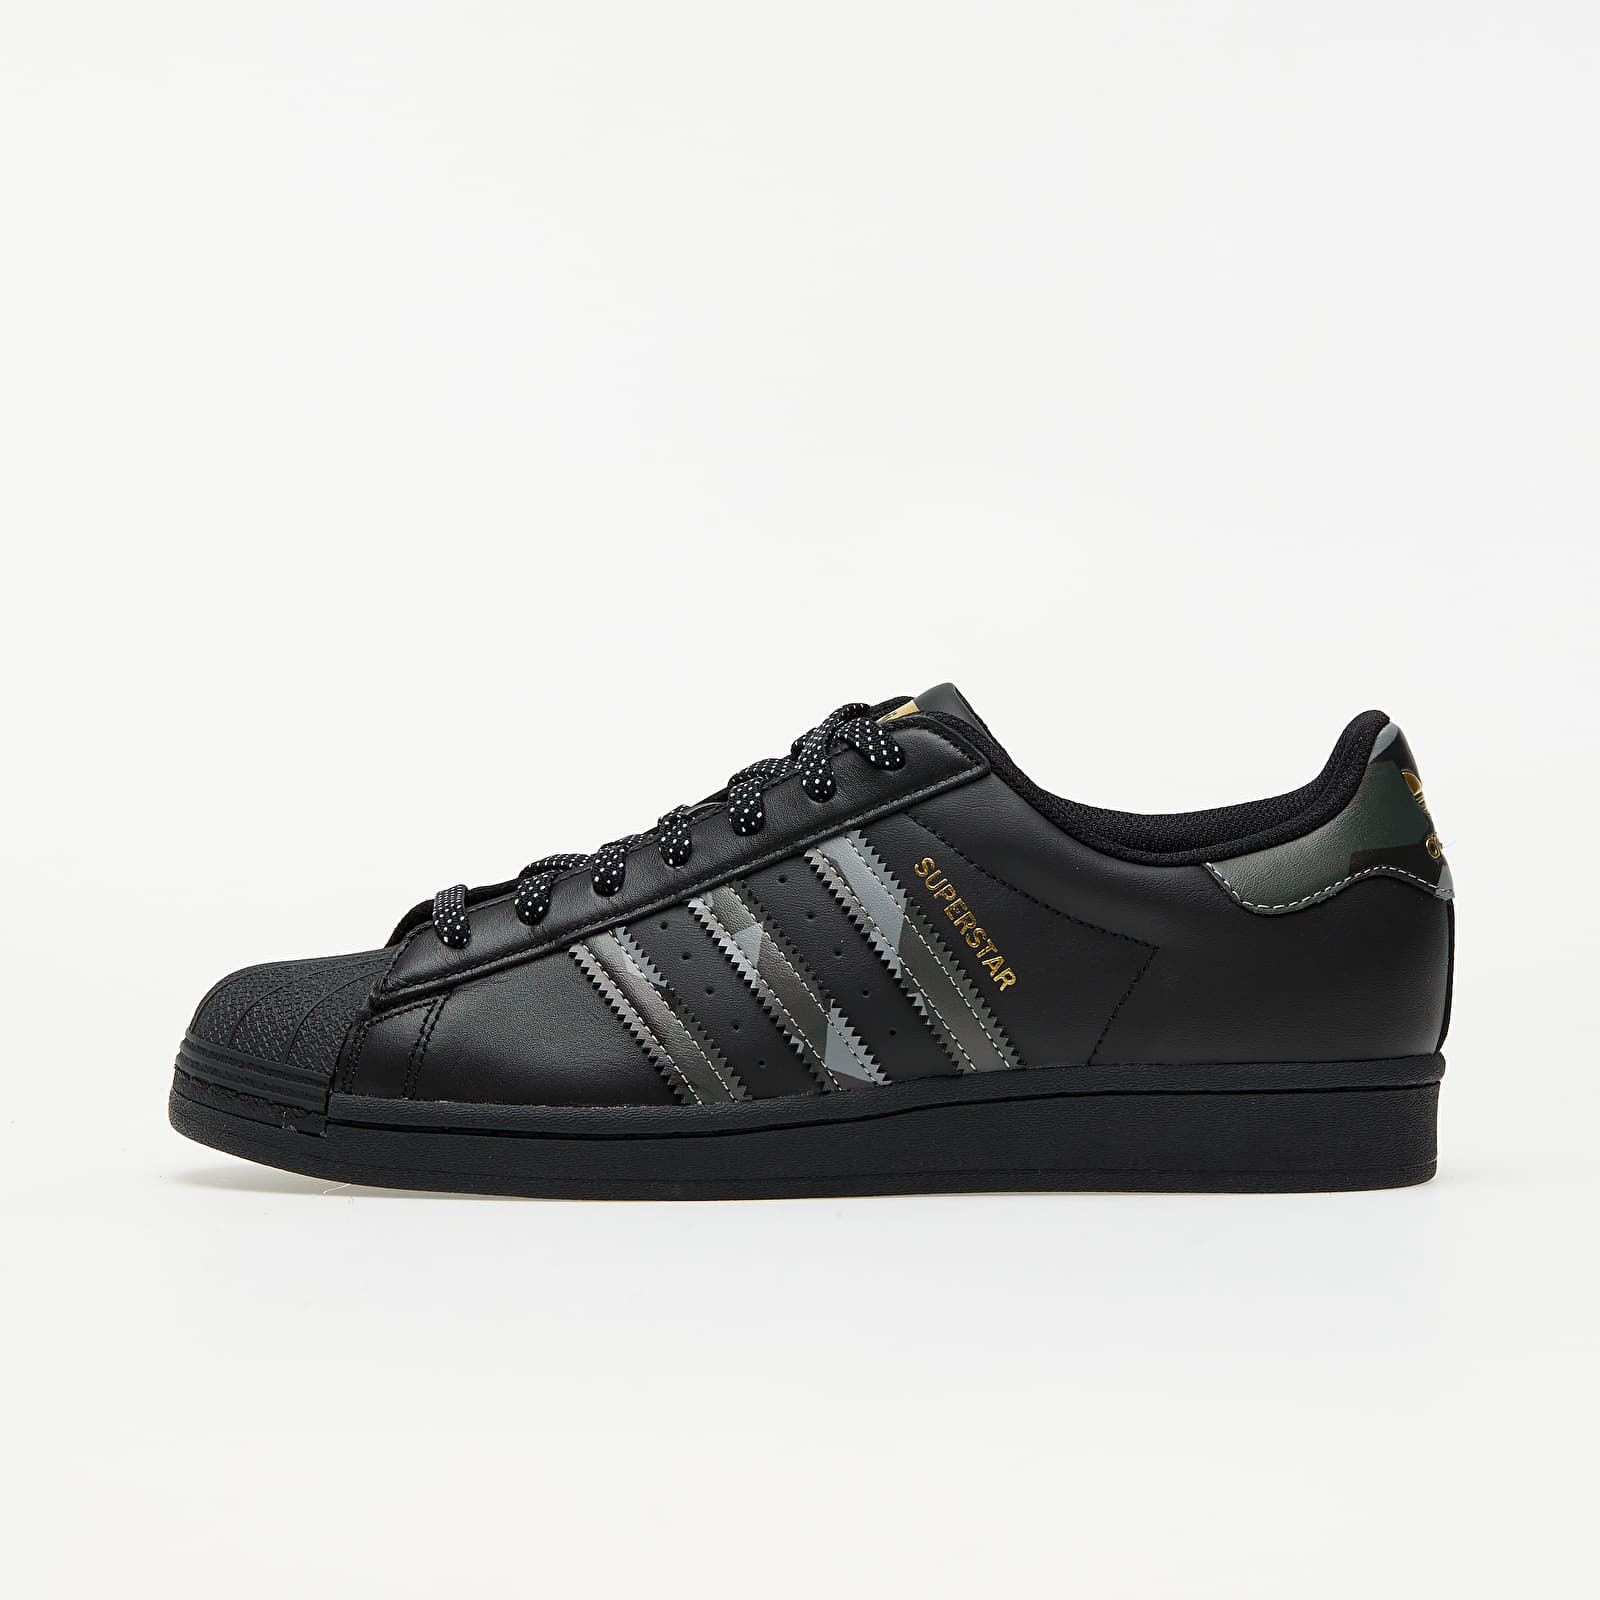 adidas Superstar Core Black/ Core Black/ Gold Metalic EUR 42